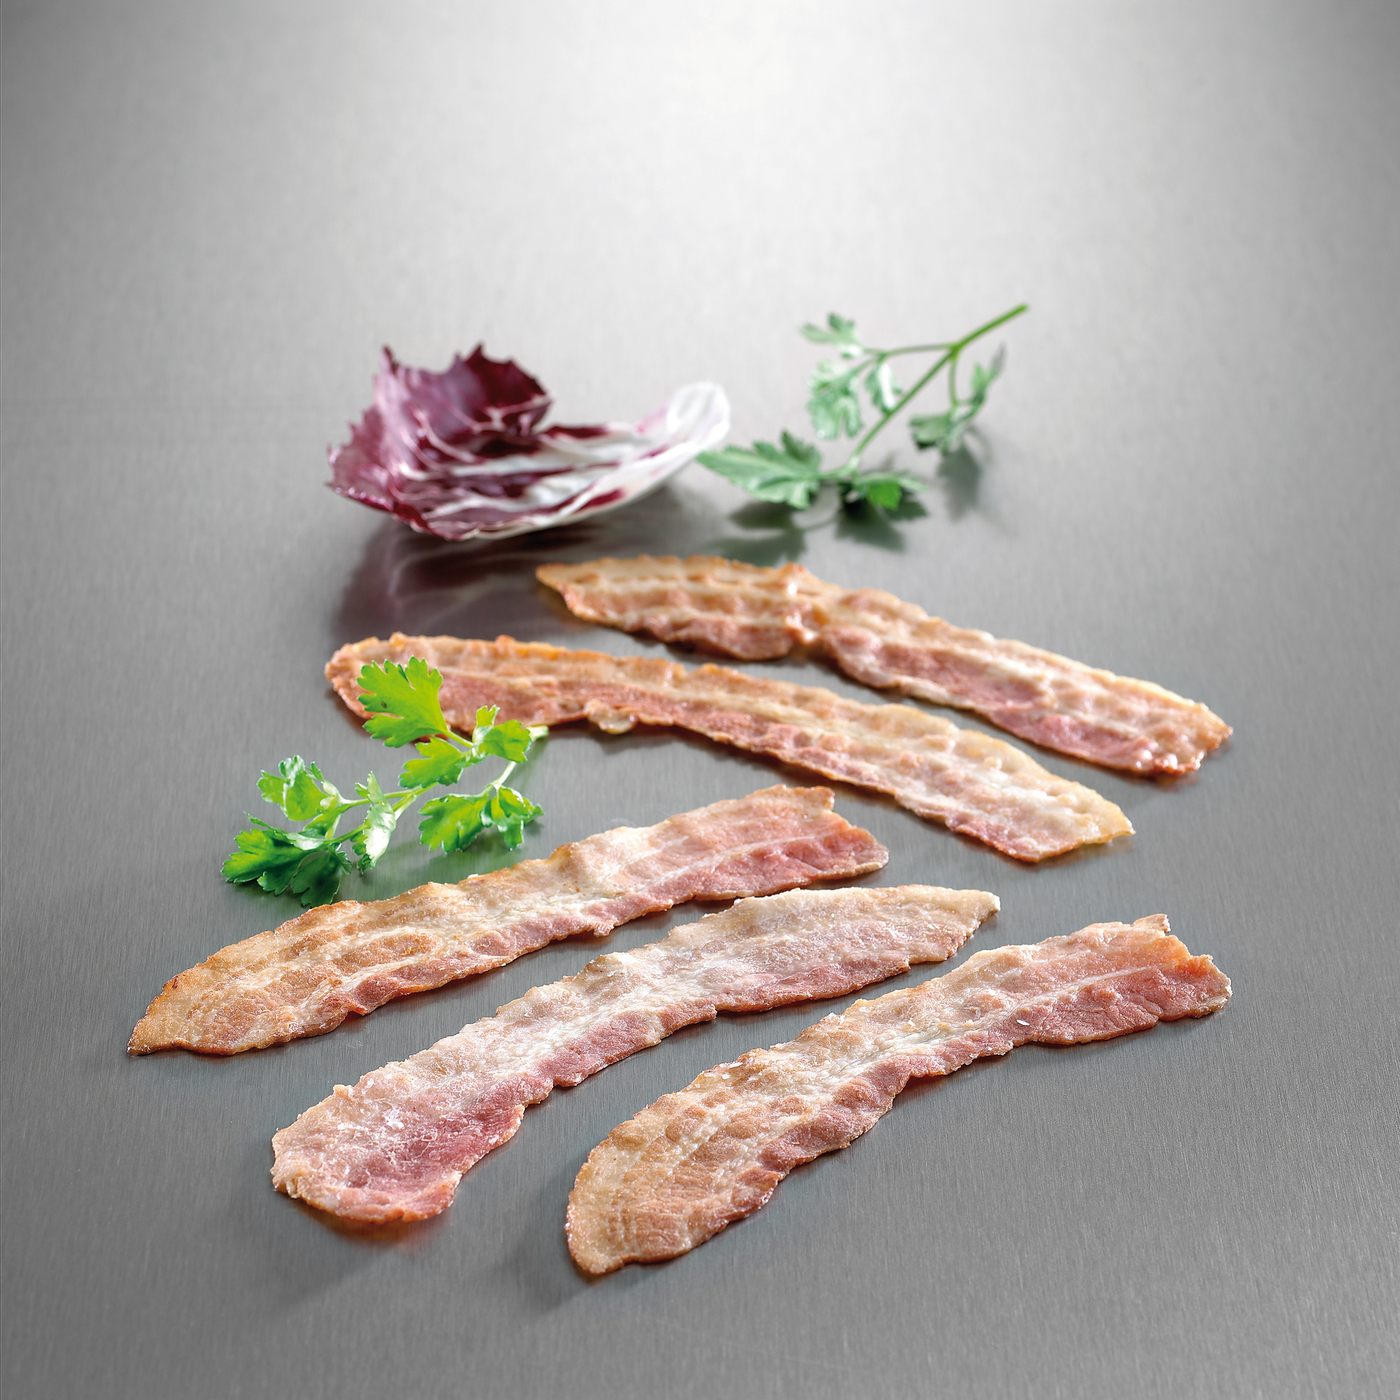 Fully Cooked Bacon (1)